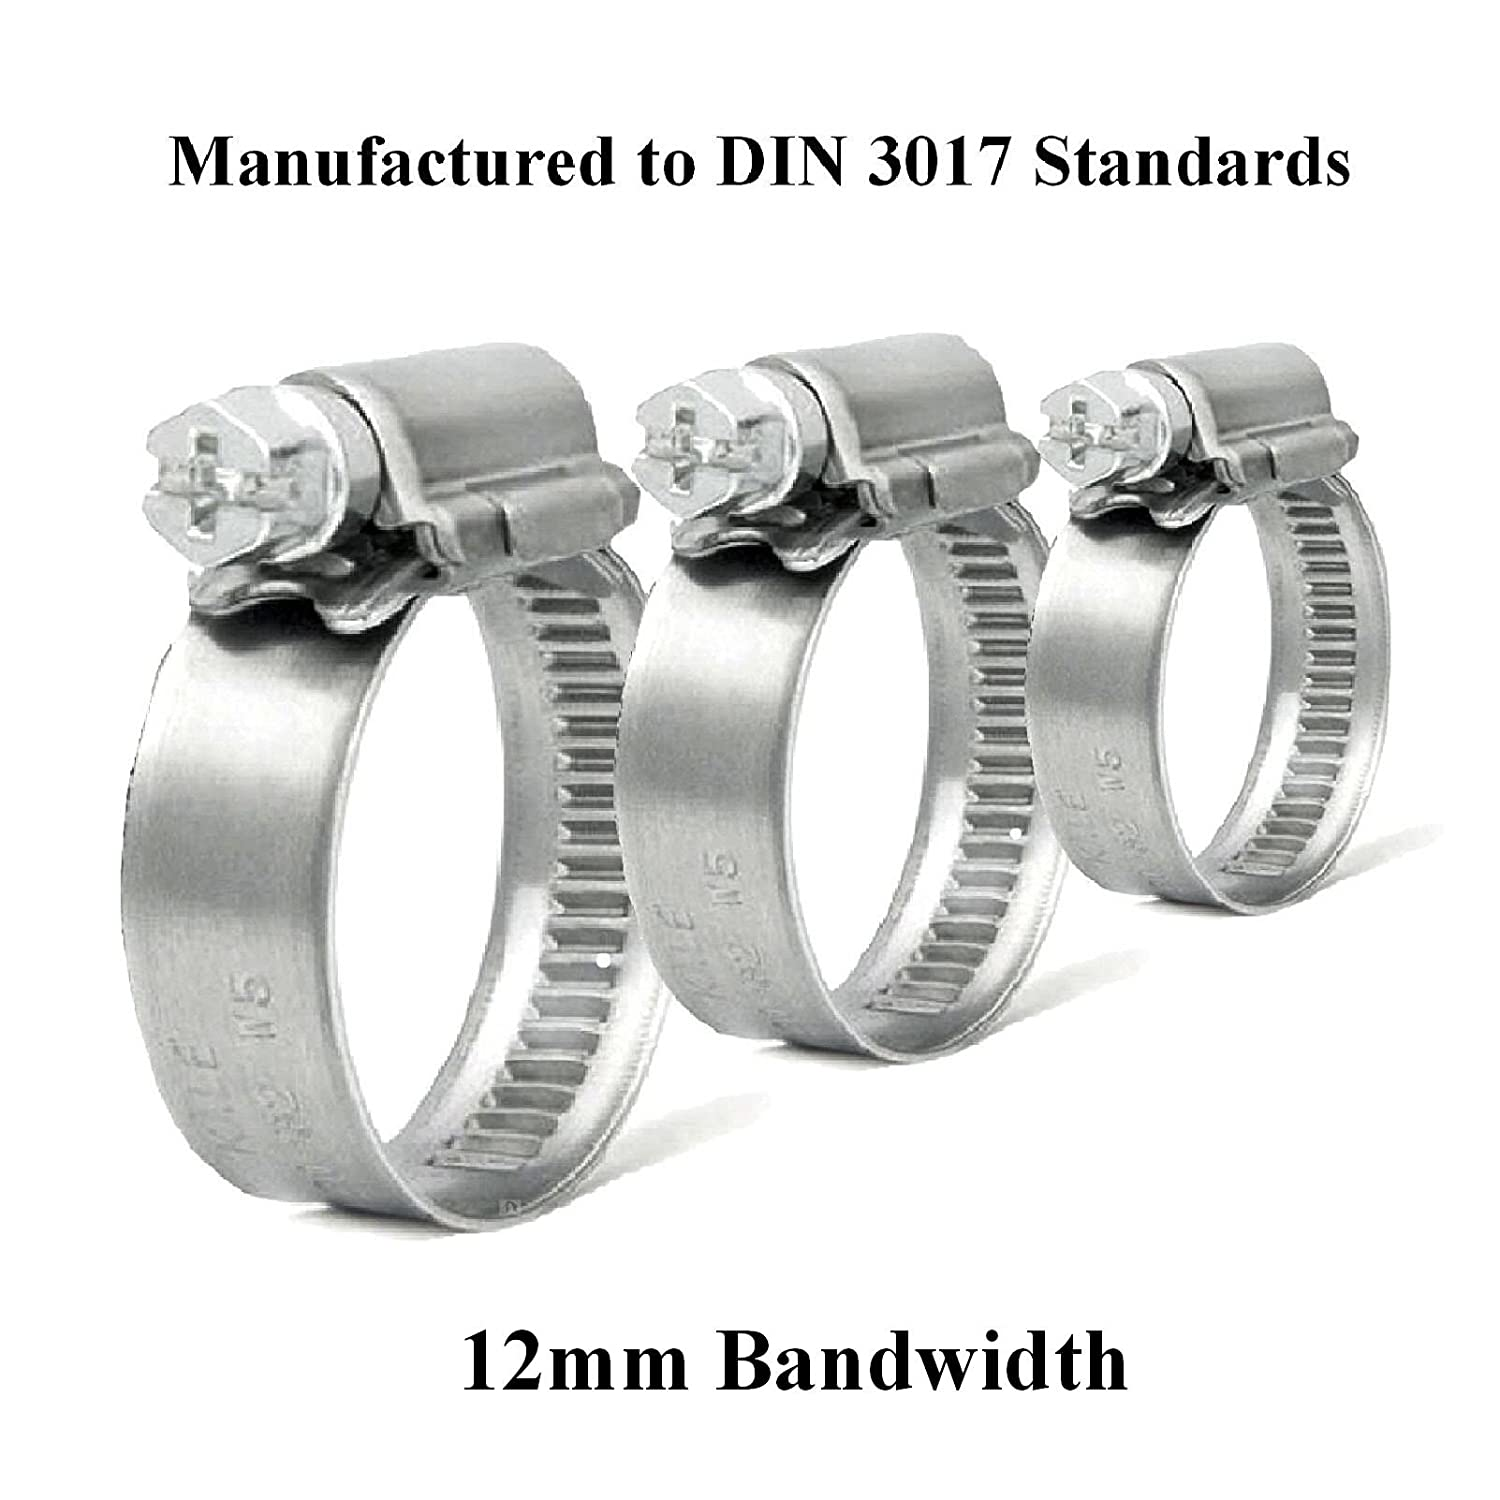 10 x High Grade Worm Drive Jubilee Hose Clamps 90-110mm 12mm Band W1 Zinc Coated Hose Clips